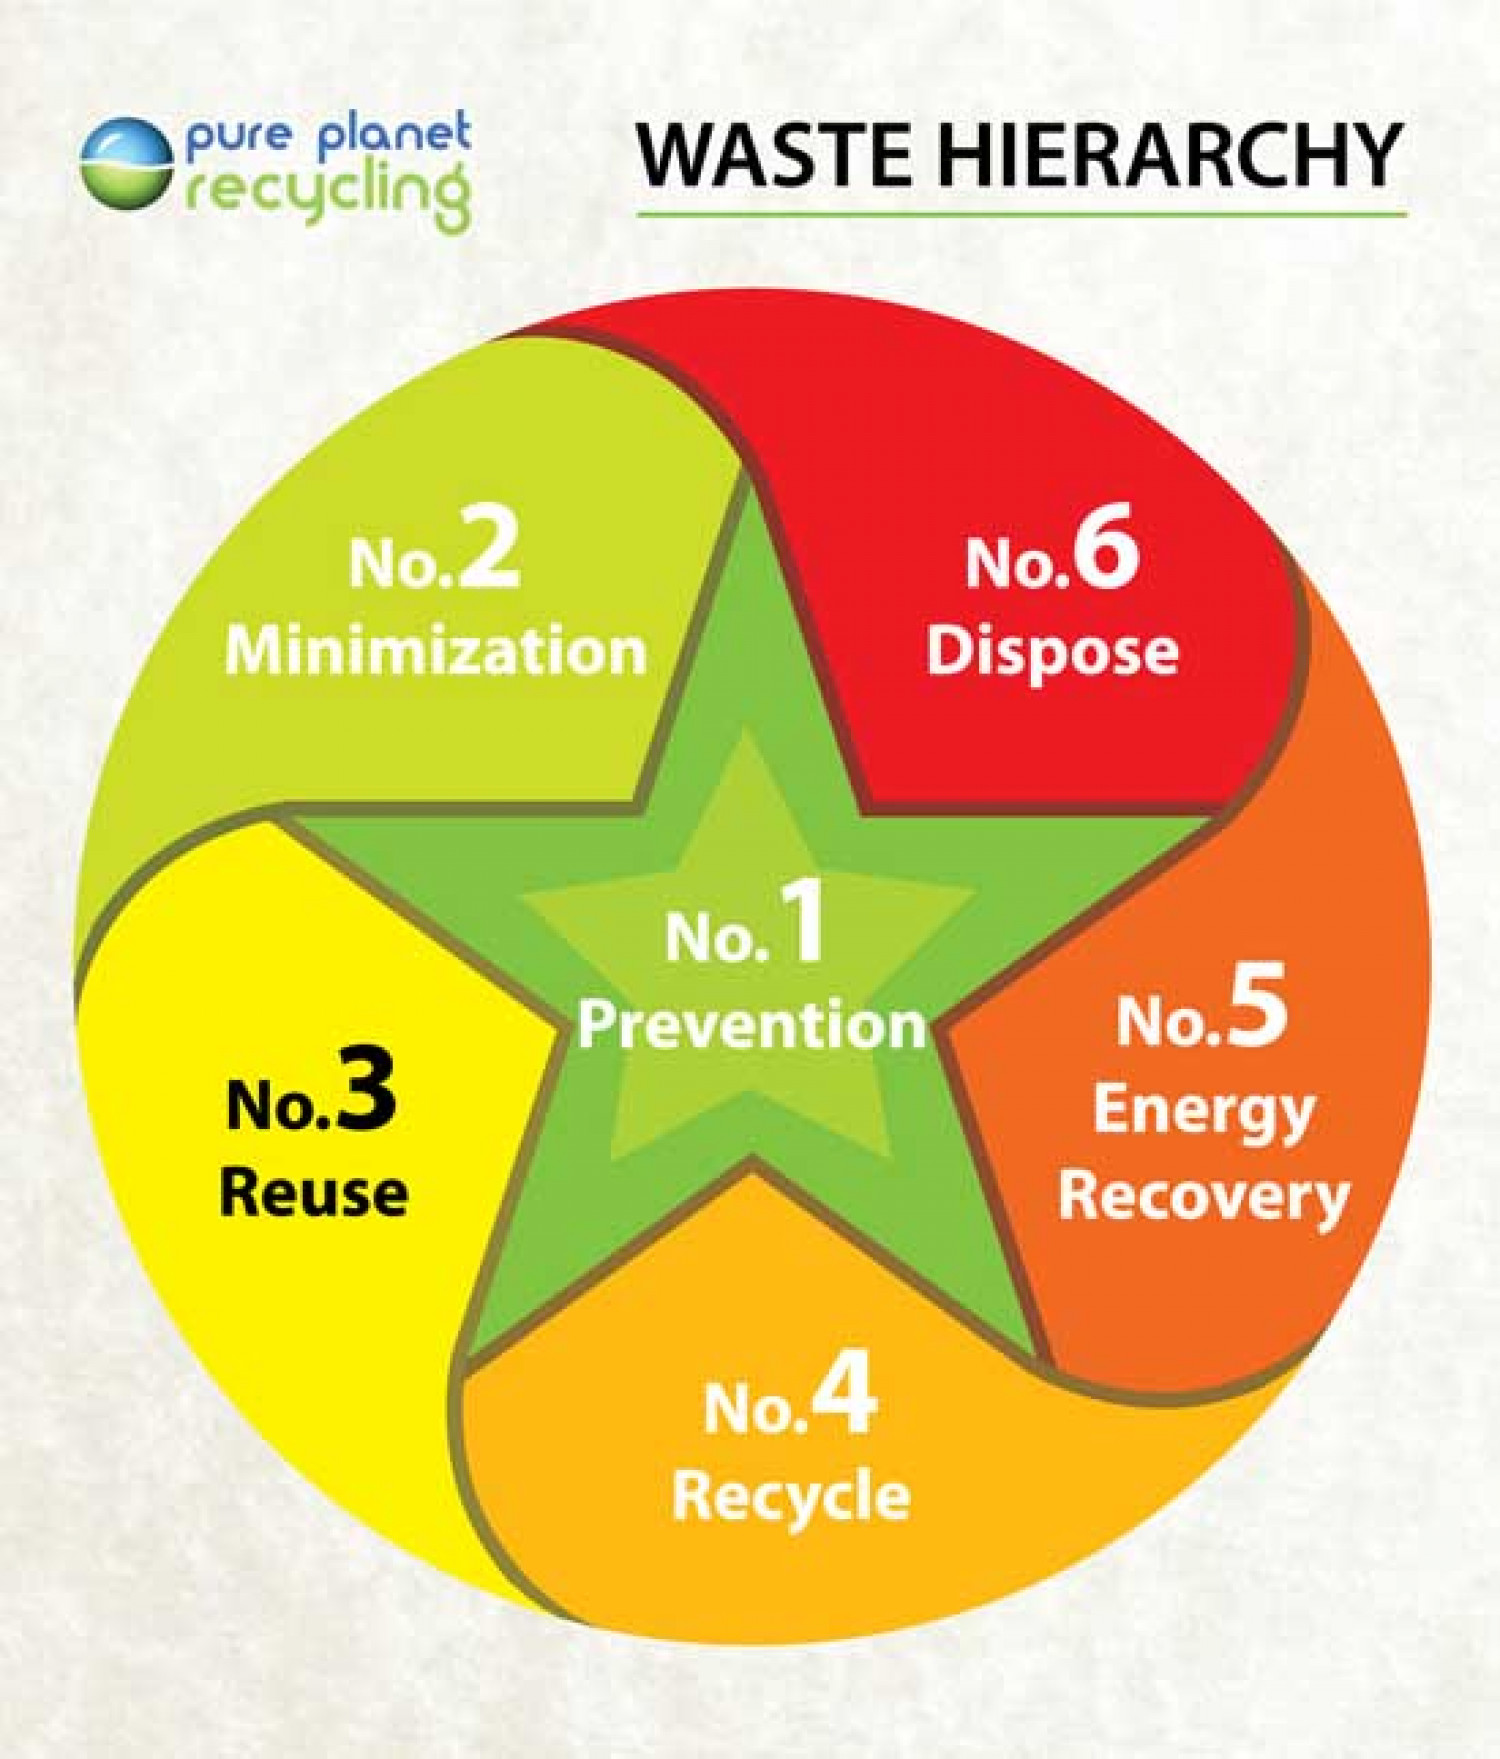 Waste Management In Beaumont Mail: Waste Hierarchy